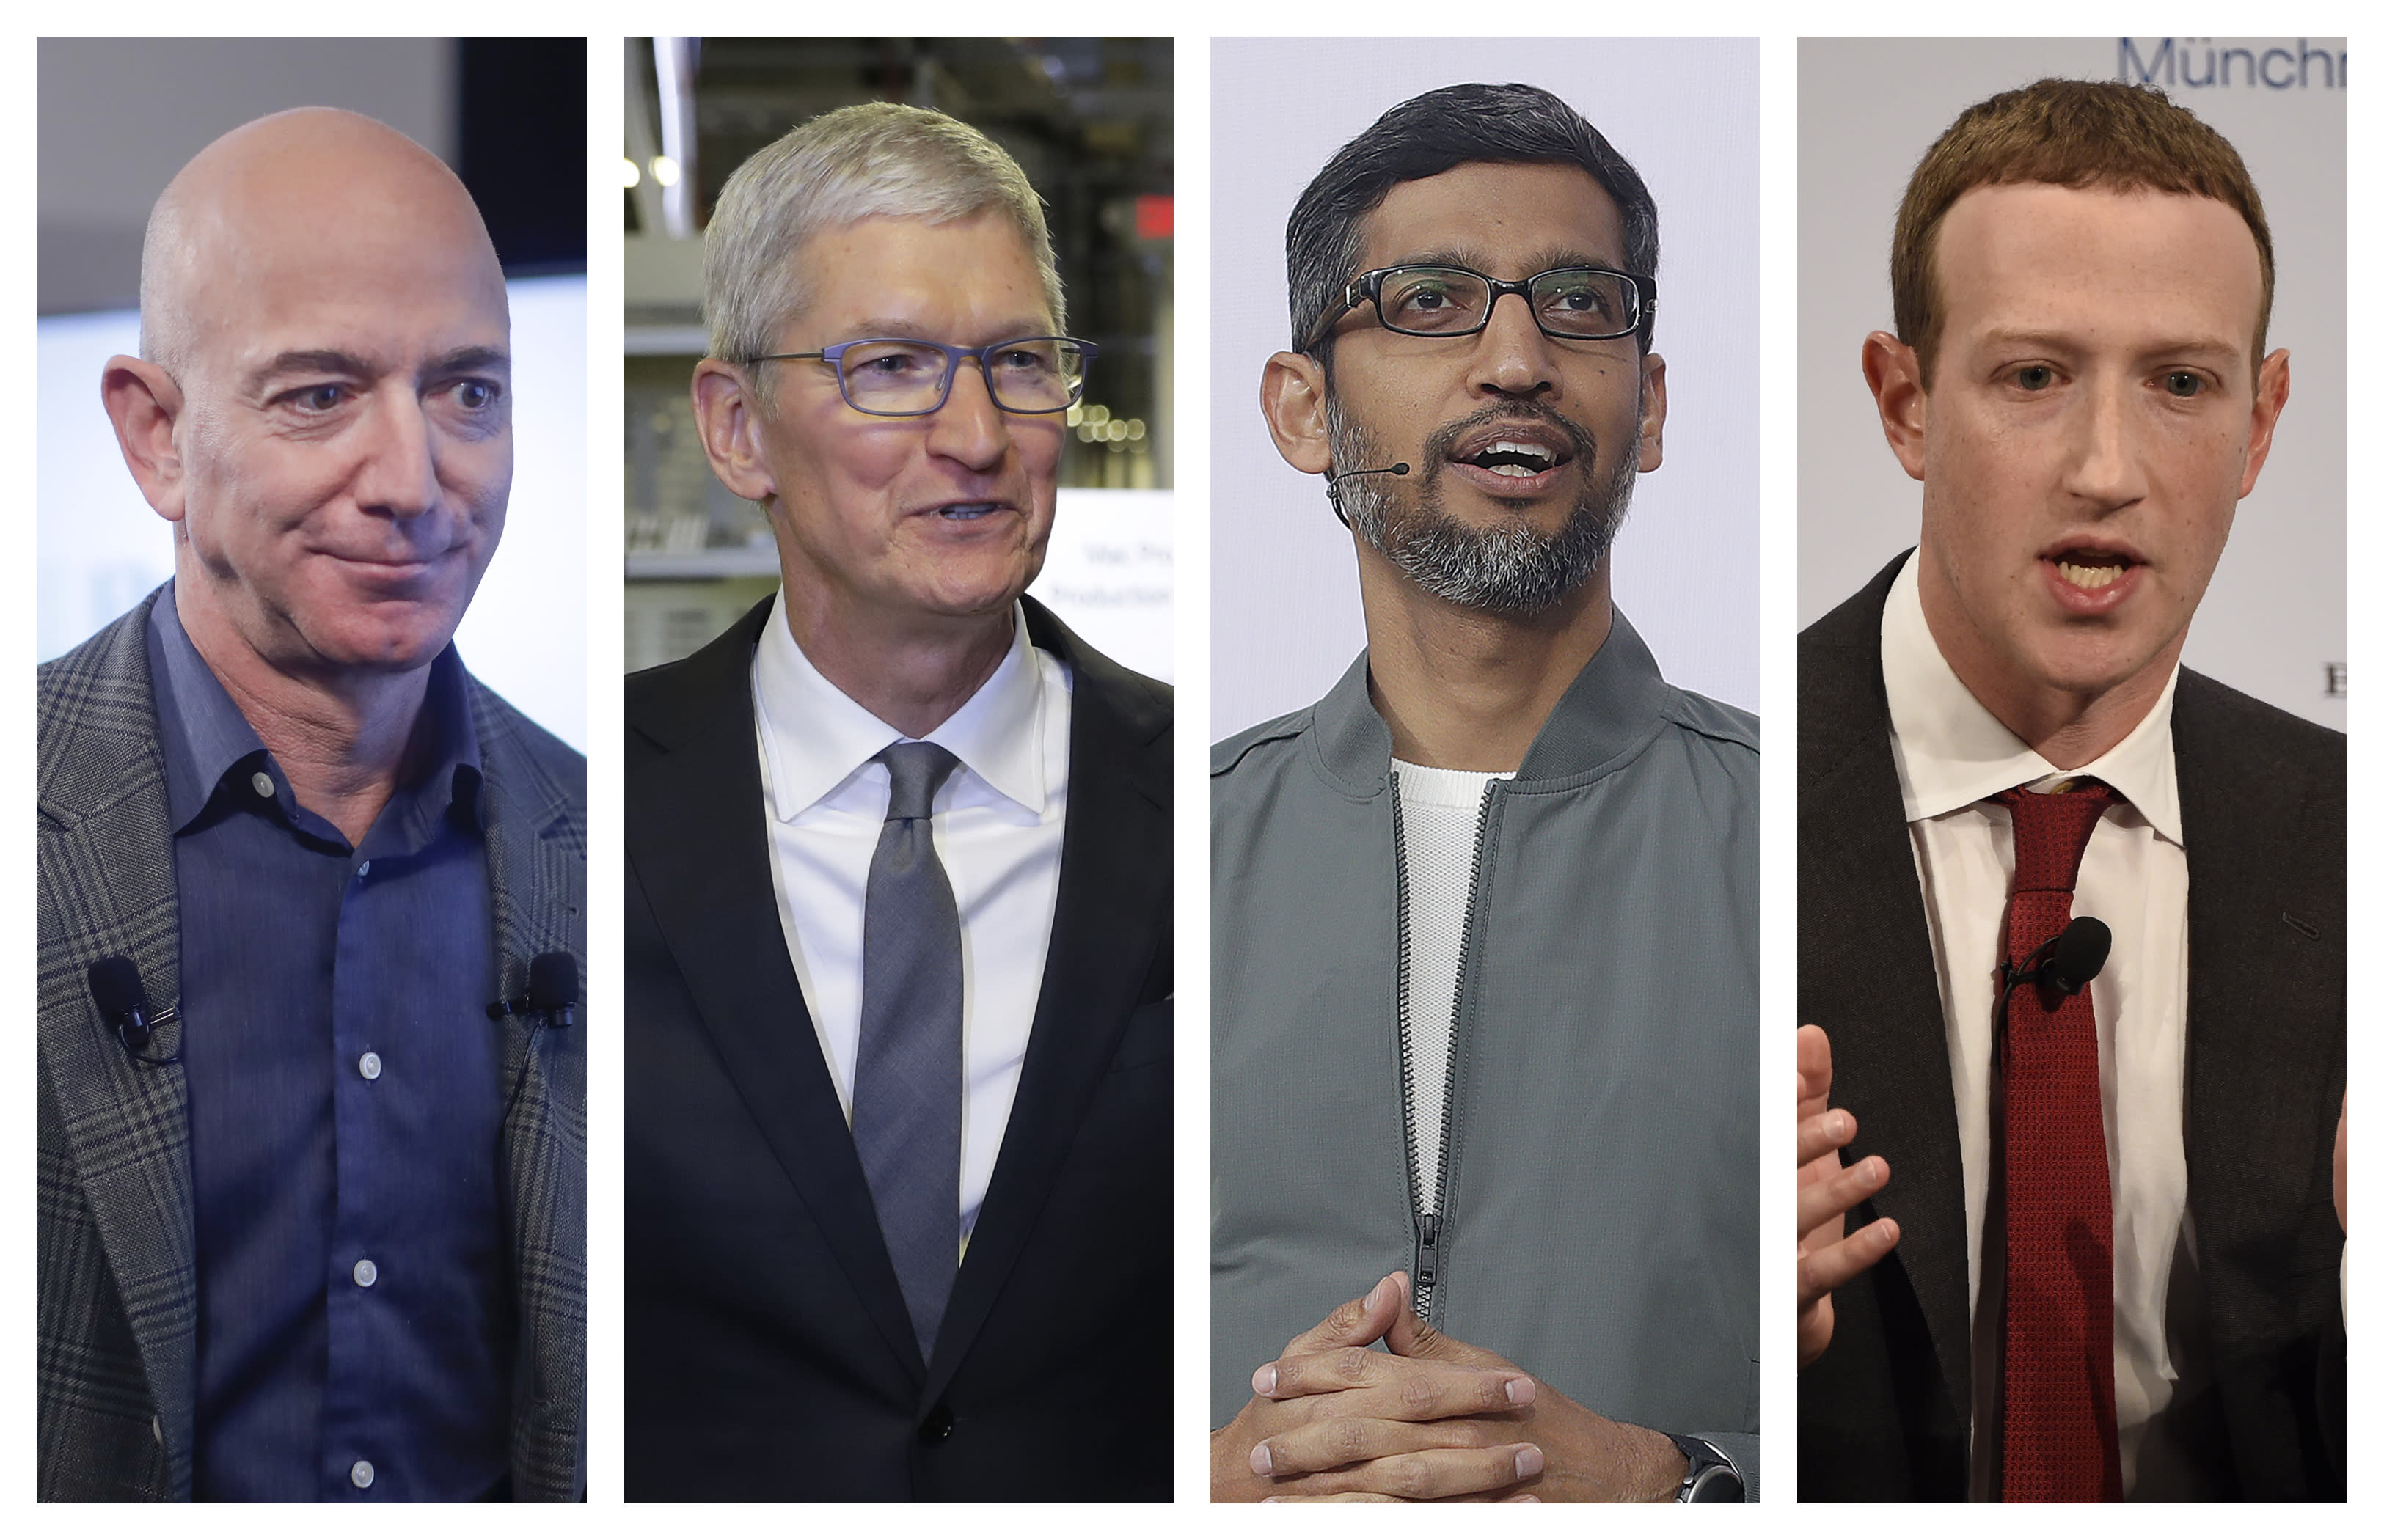 Amazon, Apple, Facebook, and Google CEOs push America-first narrative in effort to avoid antitrust scrutiny